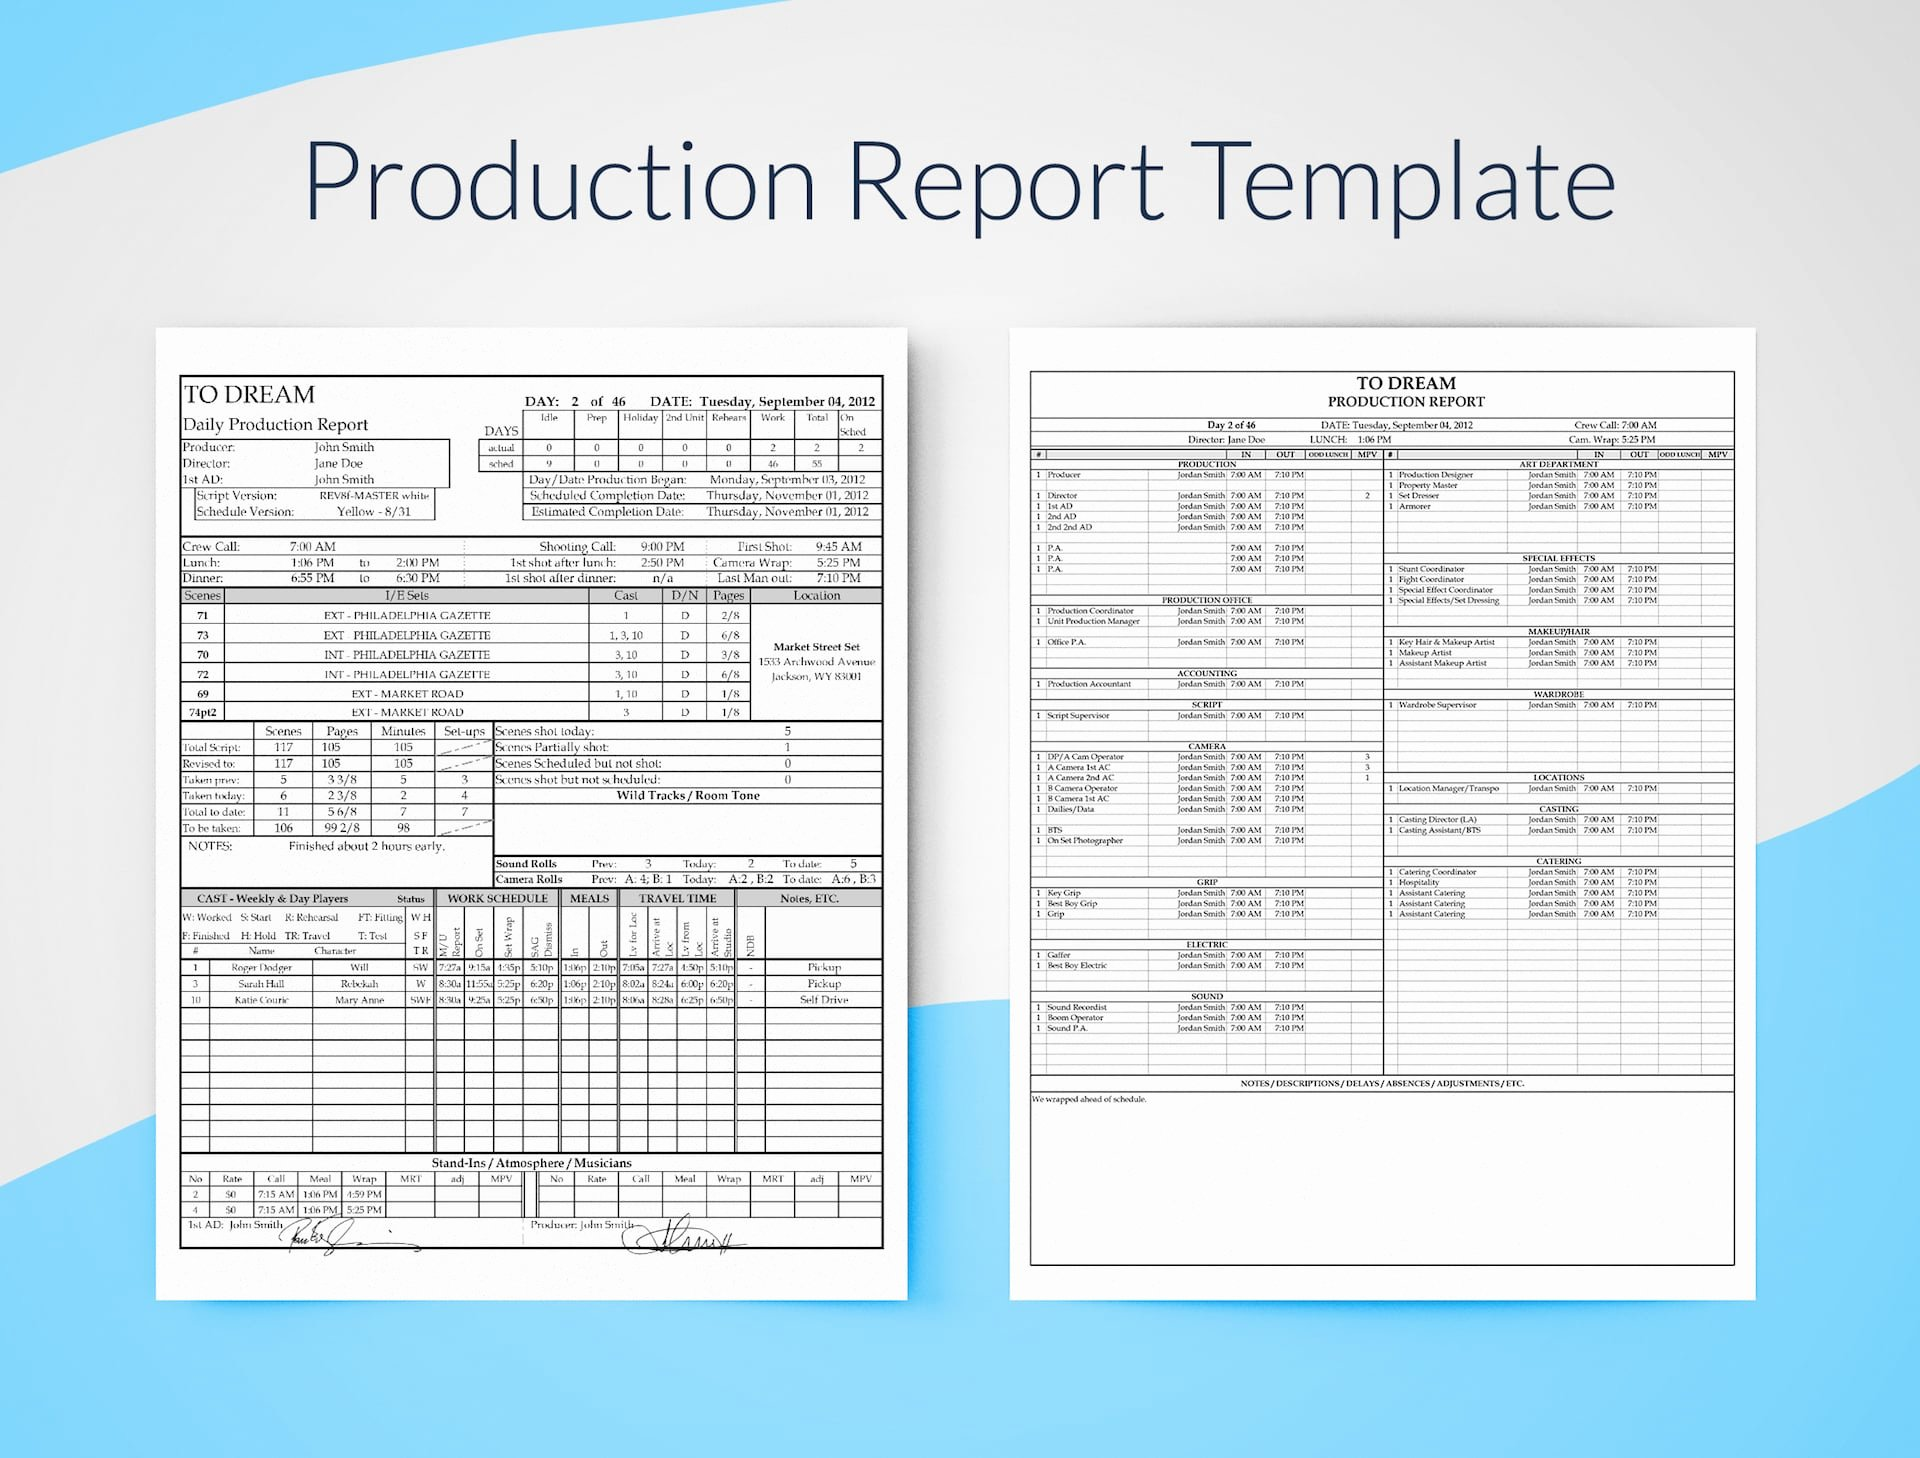 Daily Production Report Template Excel Beautiful Daily Production Report Excel Template Free Download